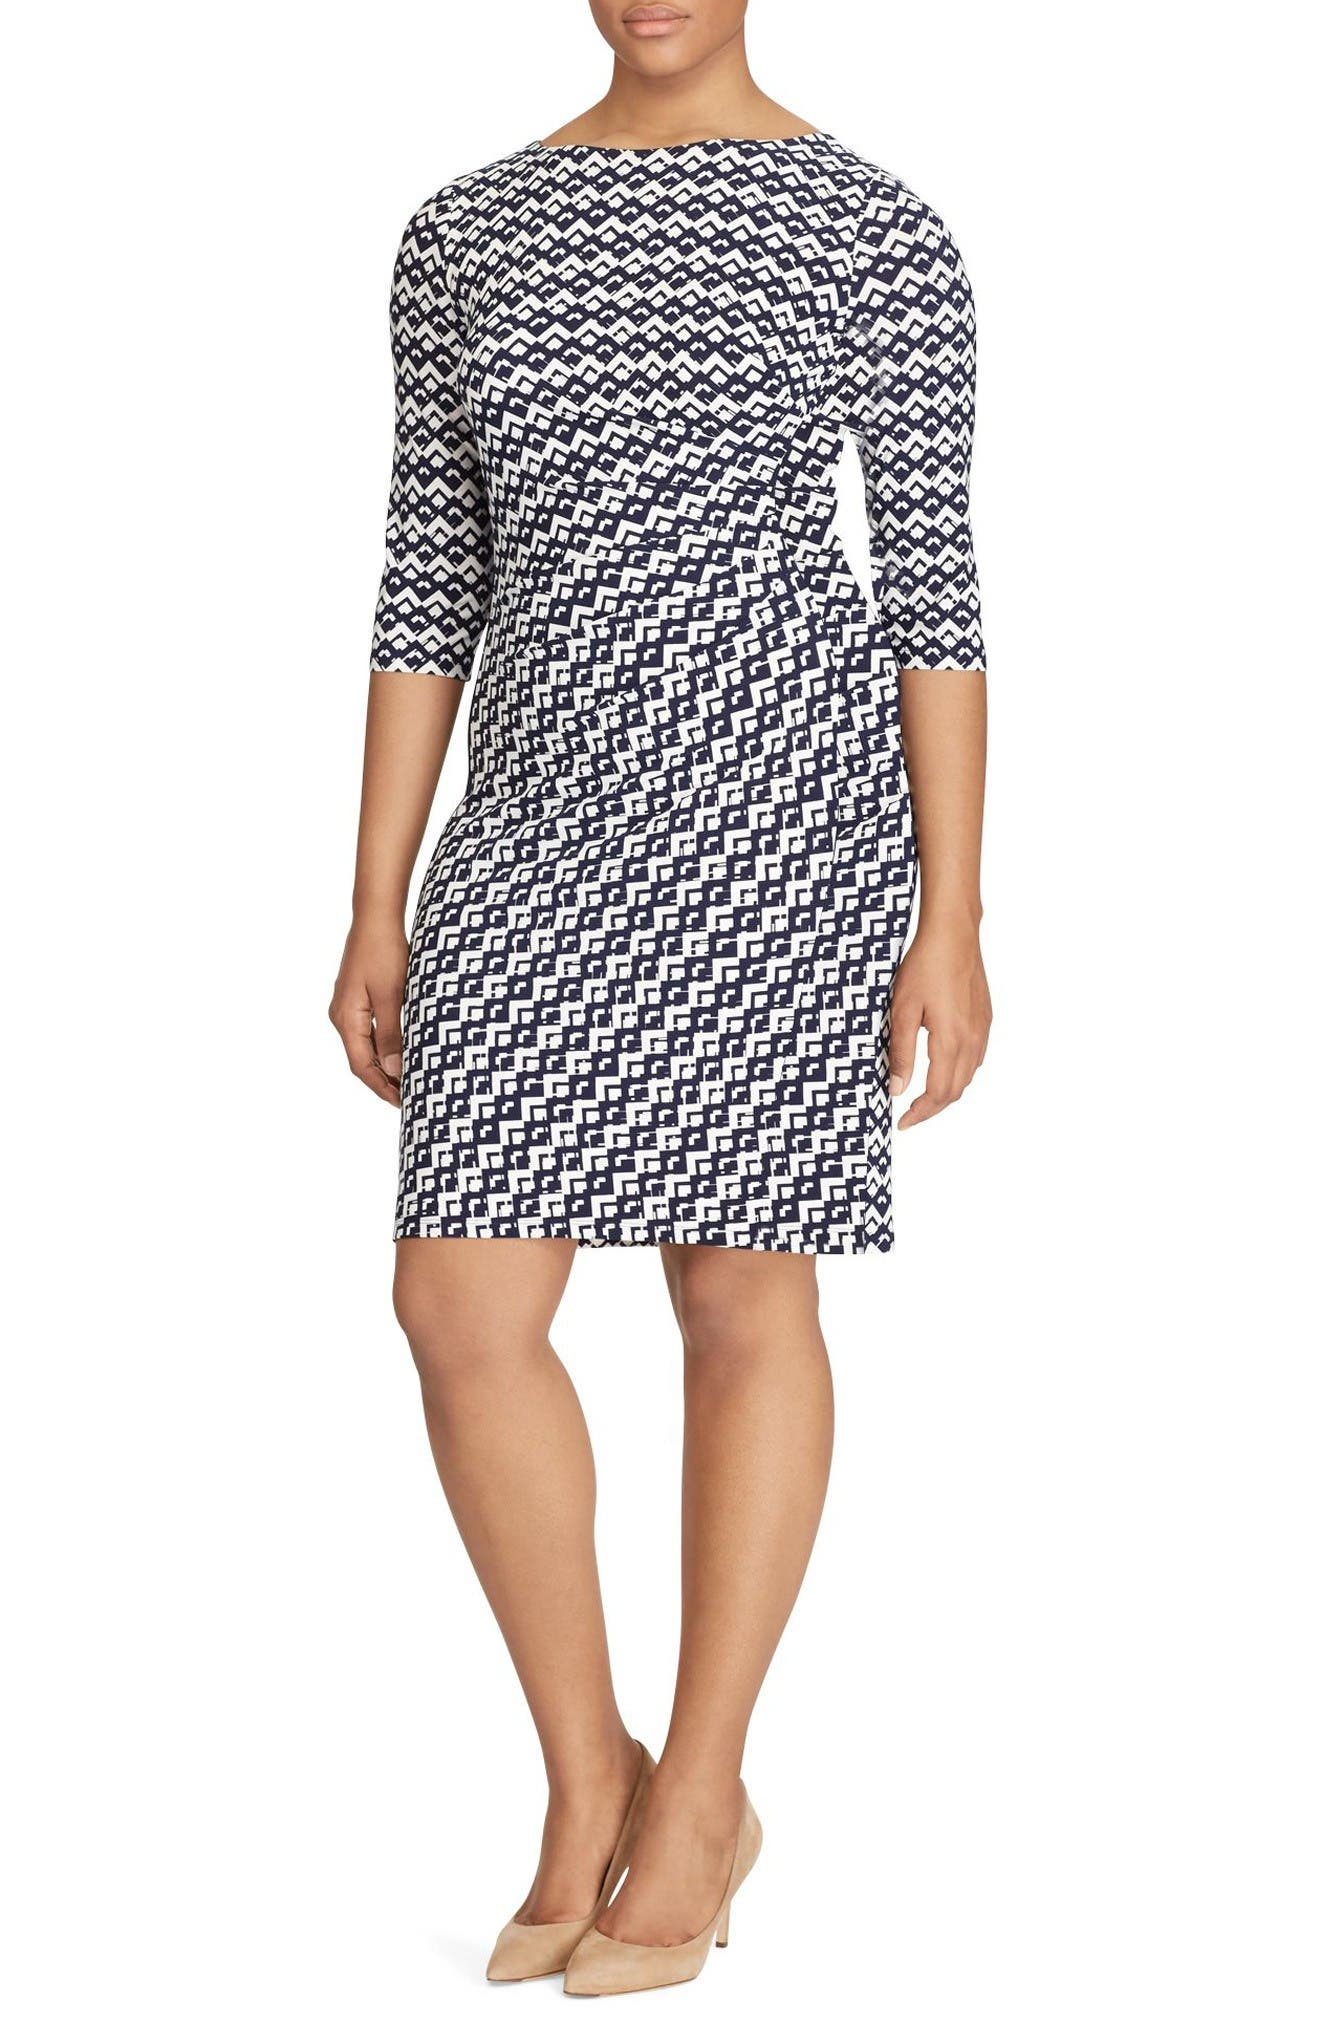 Lauren Ralph Lauren Geo Print Sheath Dress (Plus Size)